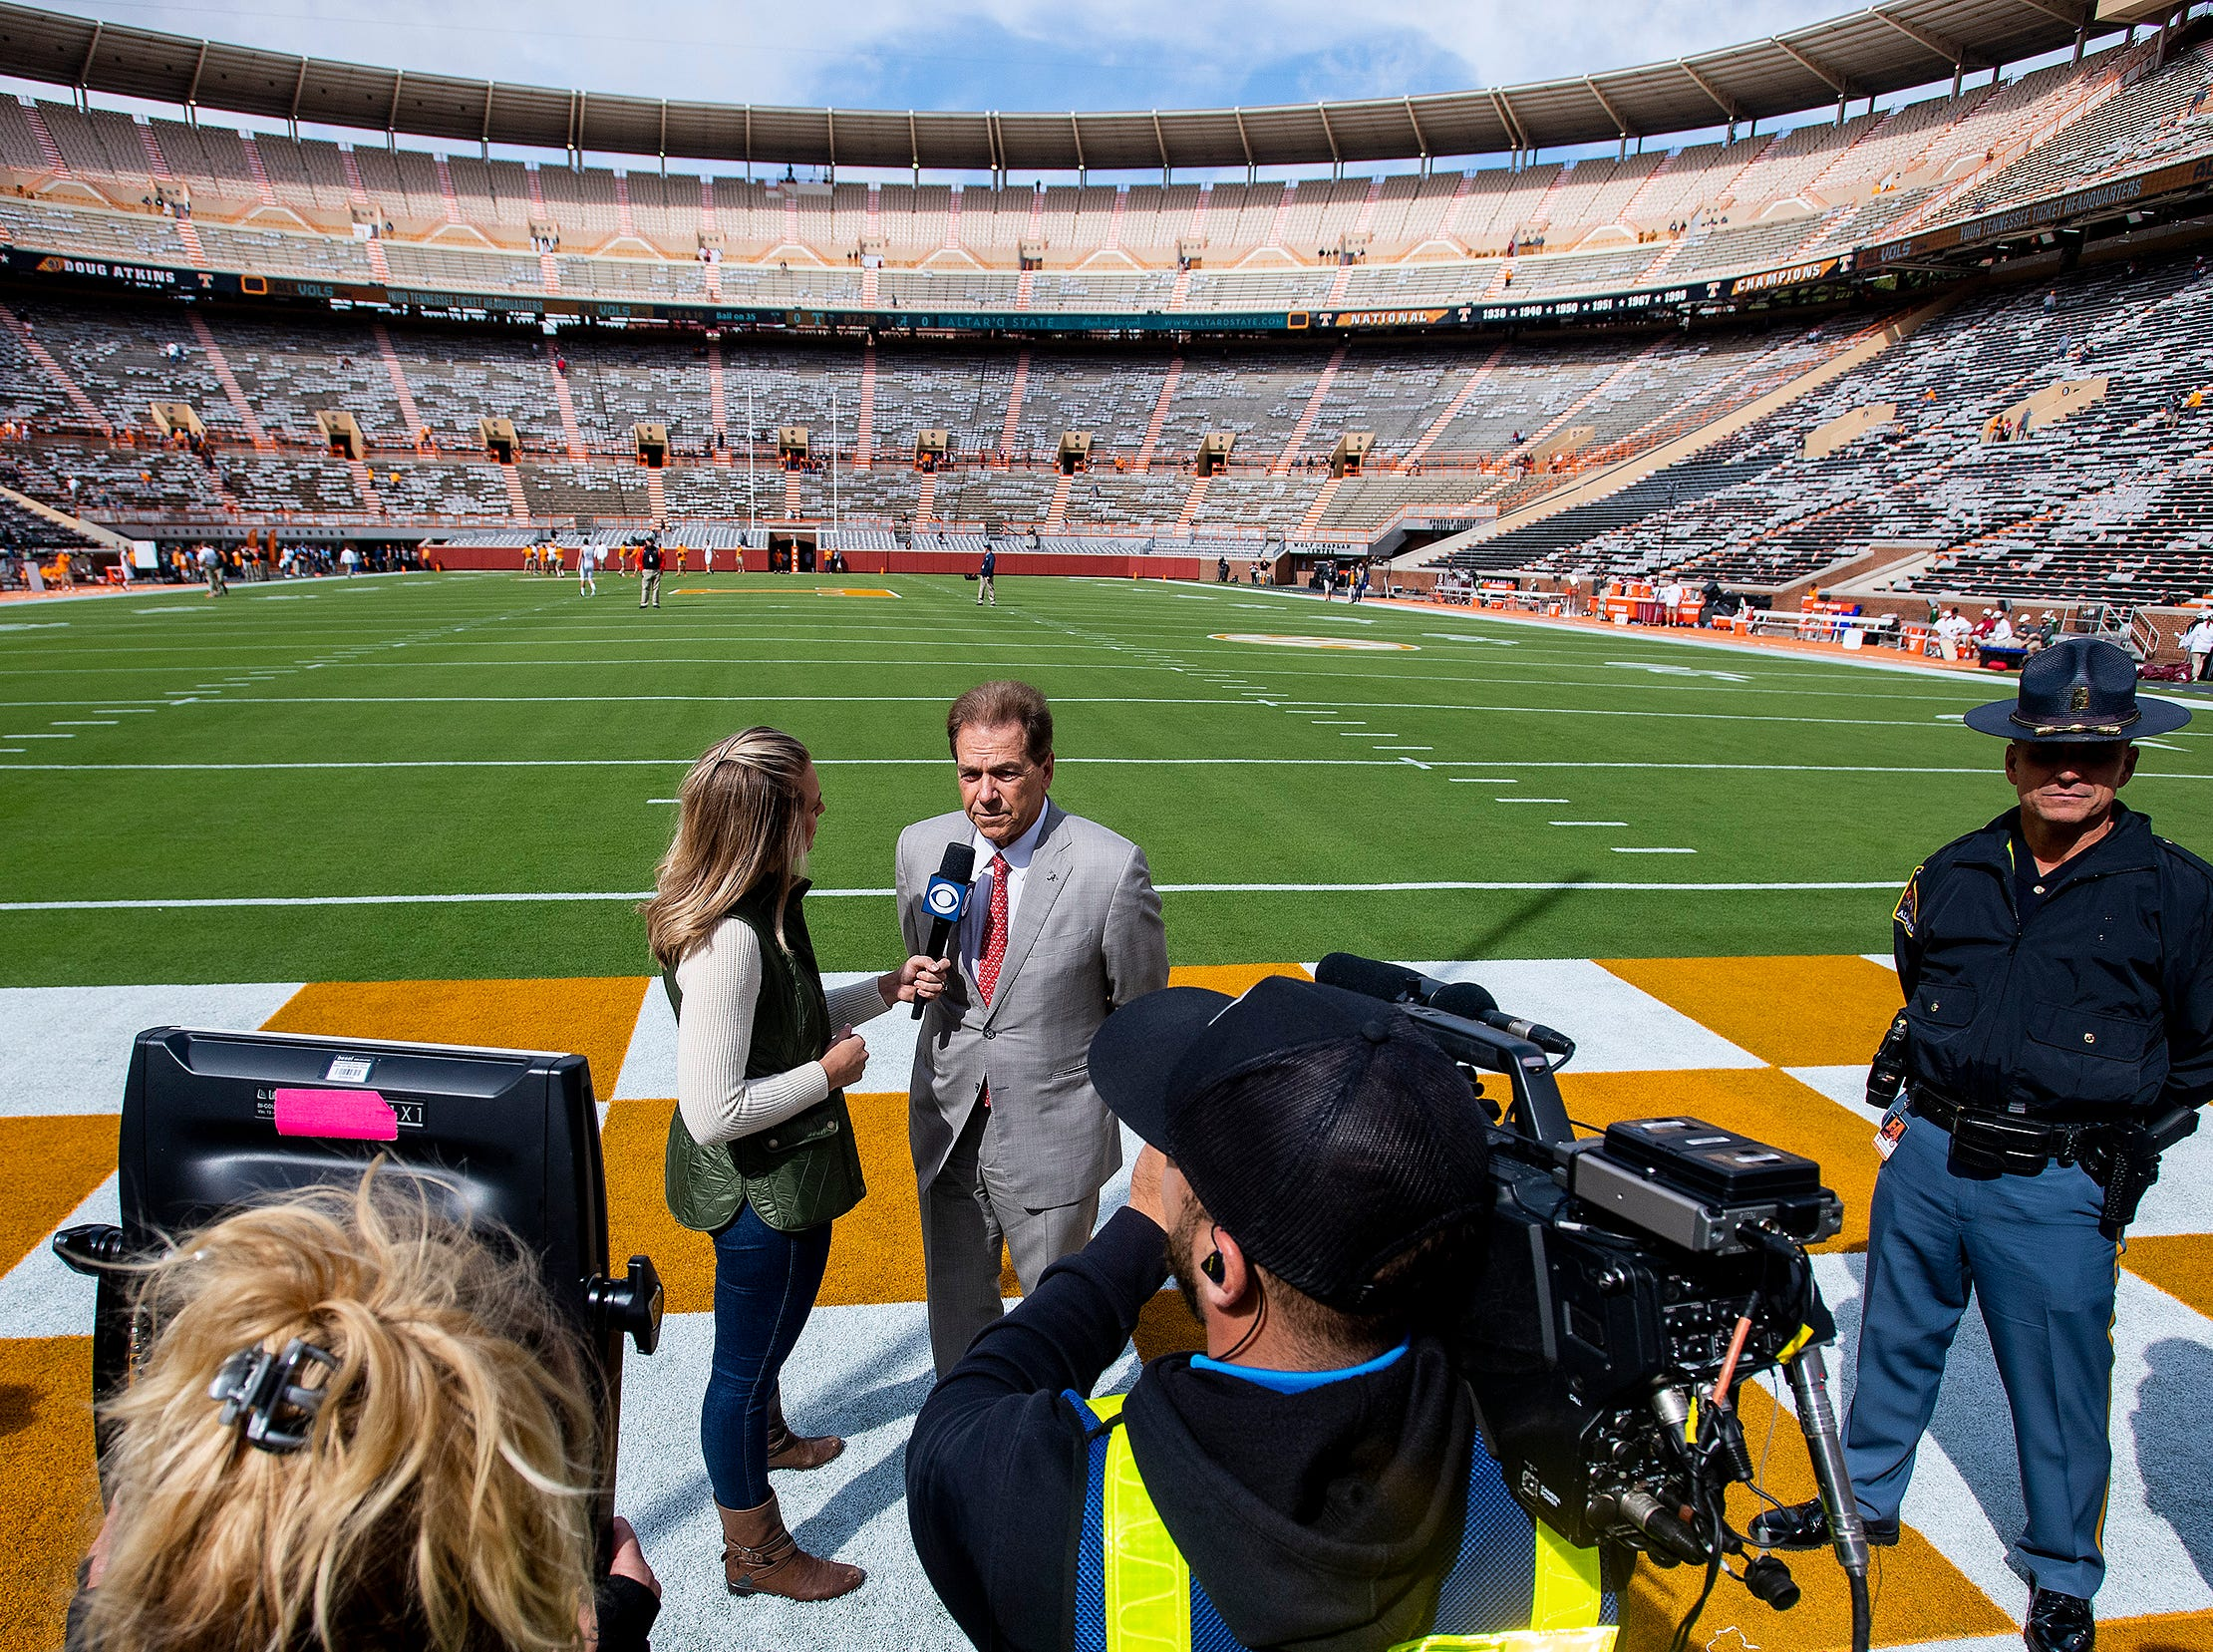 Alabama head coach Nick Saban is interviewed as the team arrives for the Tennessee game at Neyland Stadium in Knoxville, Tn., on Saturday October 20, 2018.